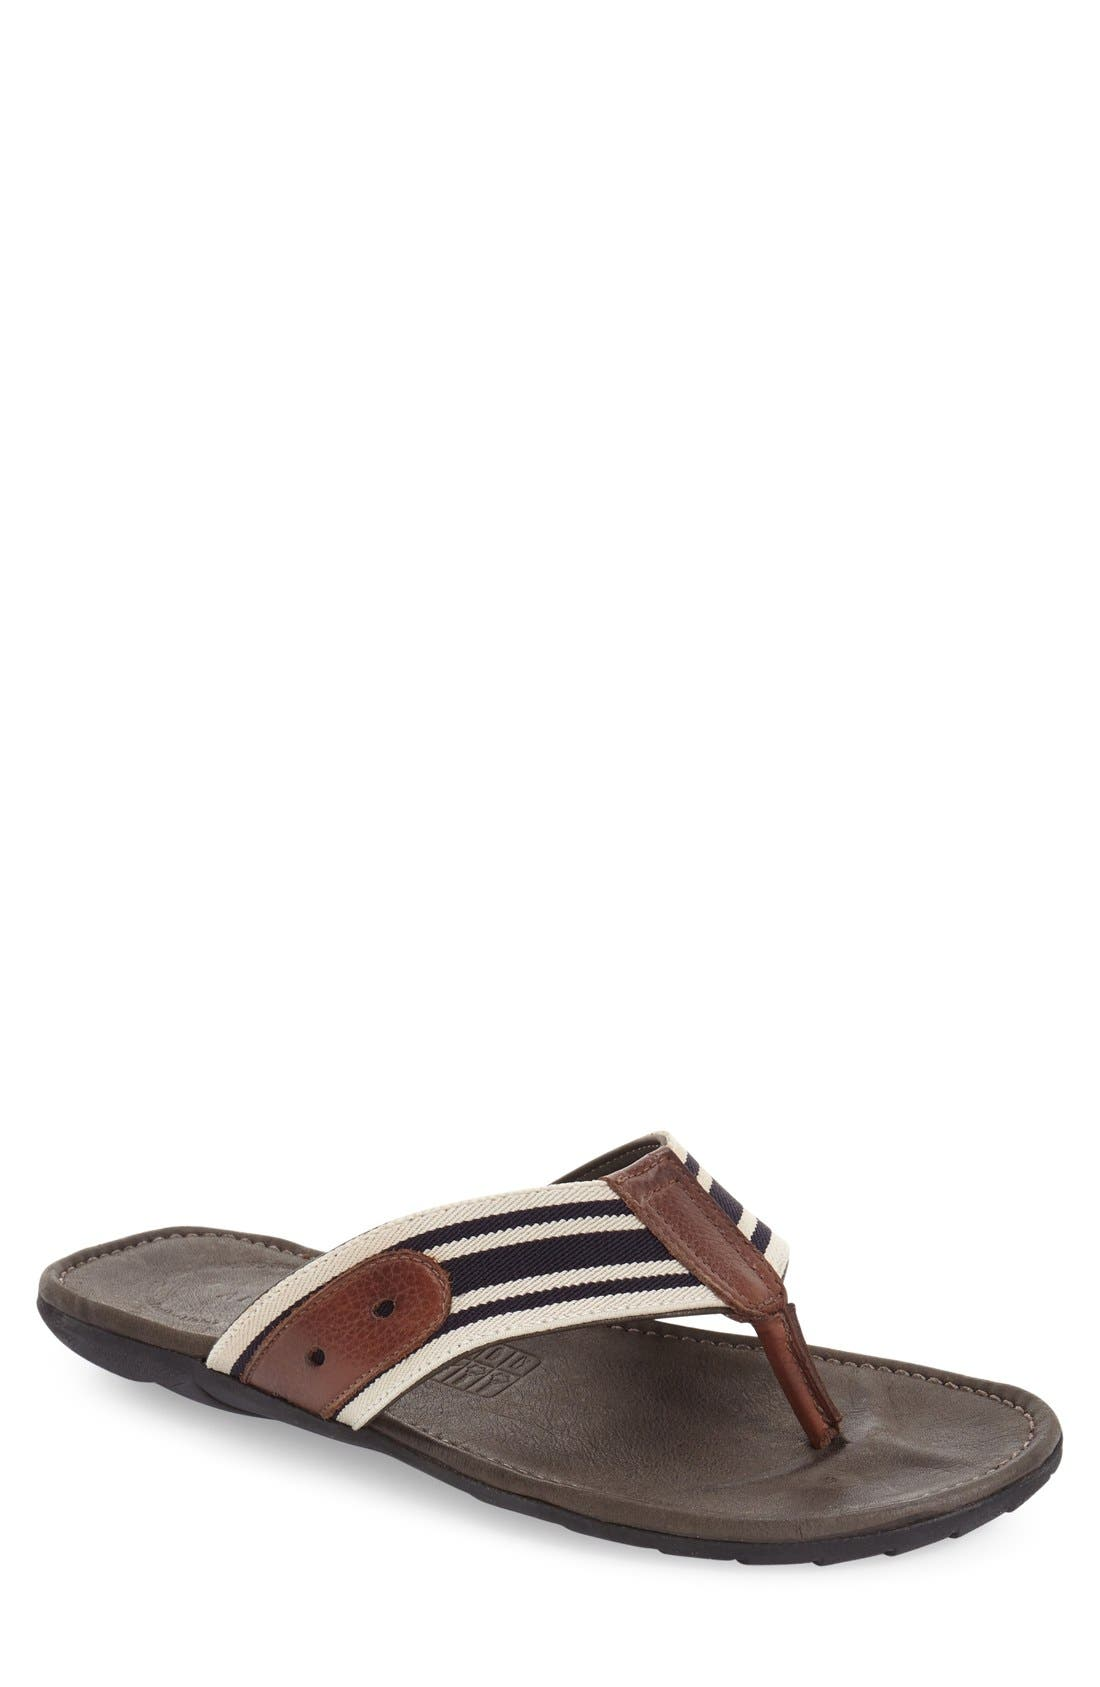 ANATOMIC & CO Paraiso Flip Flop